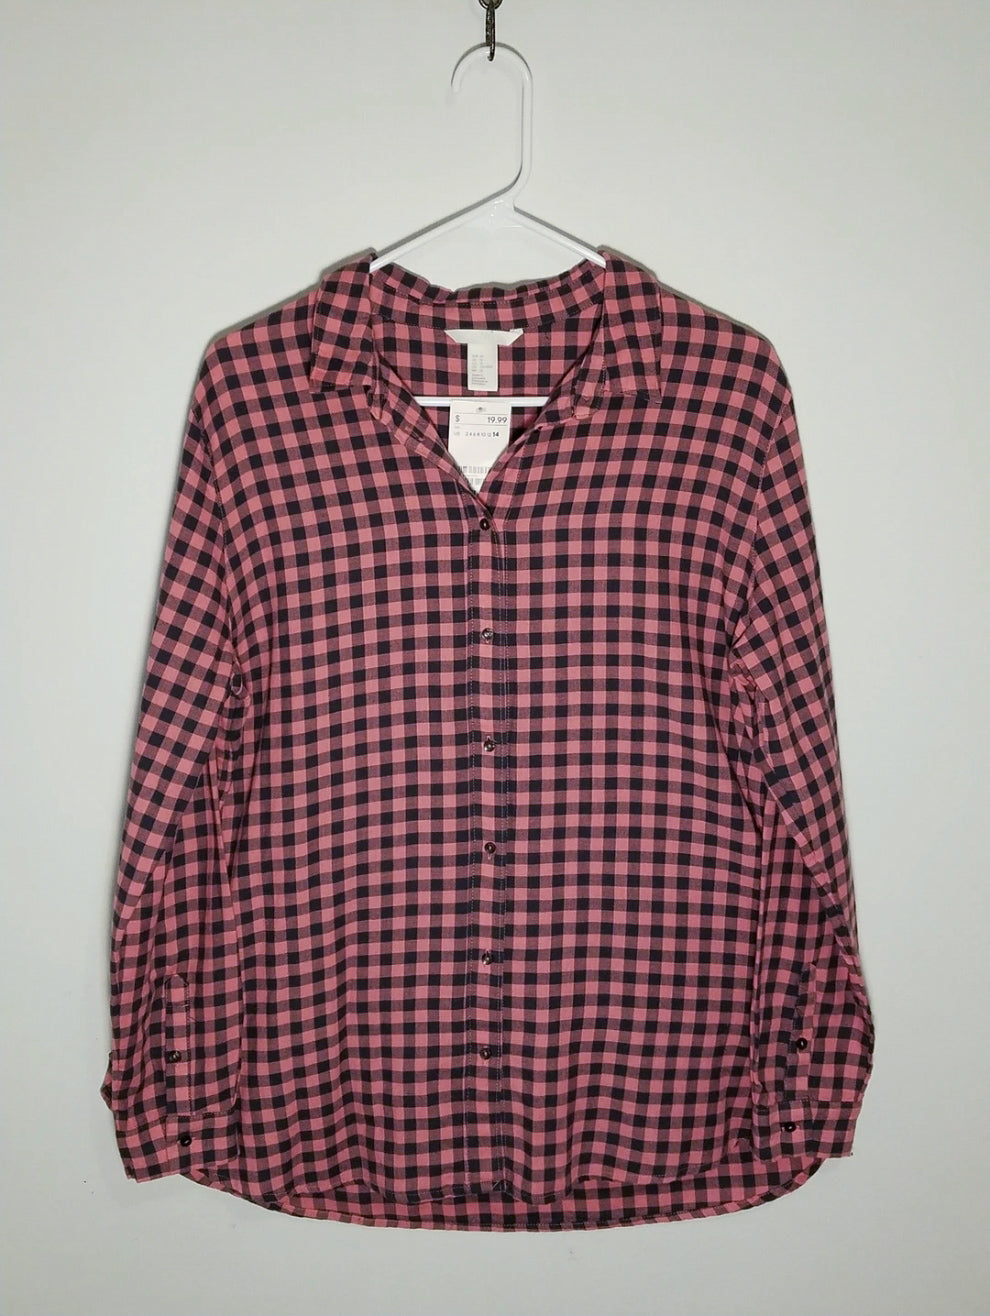 H&M Plaid Top - 14